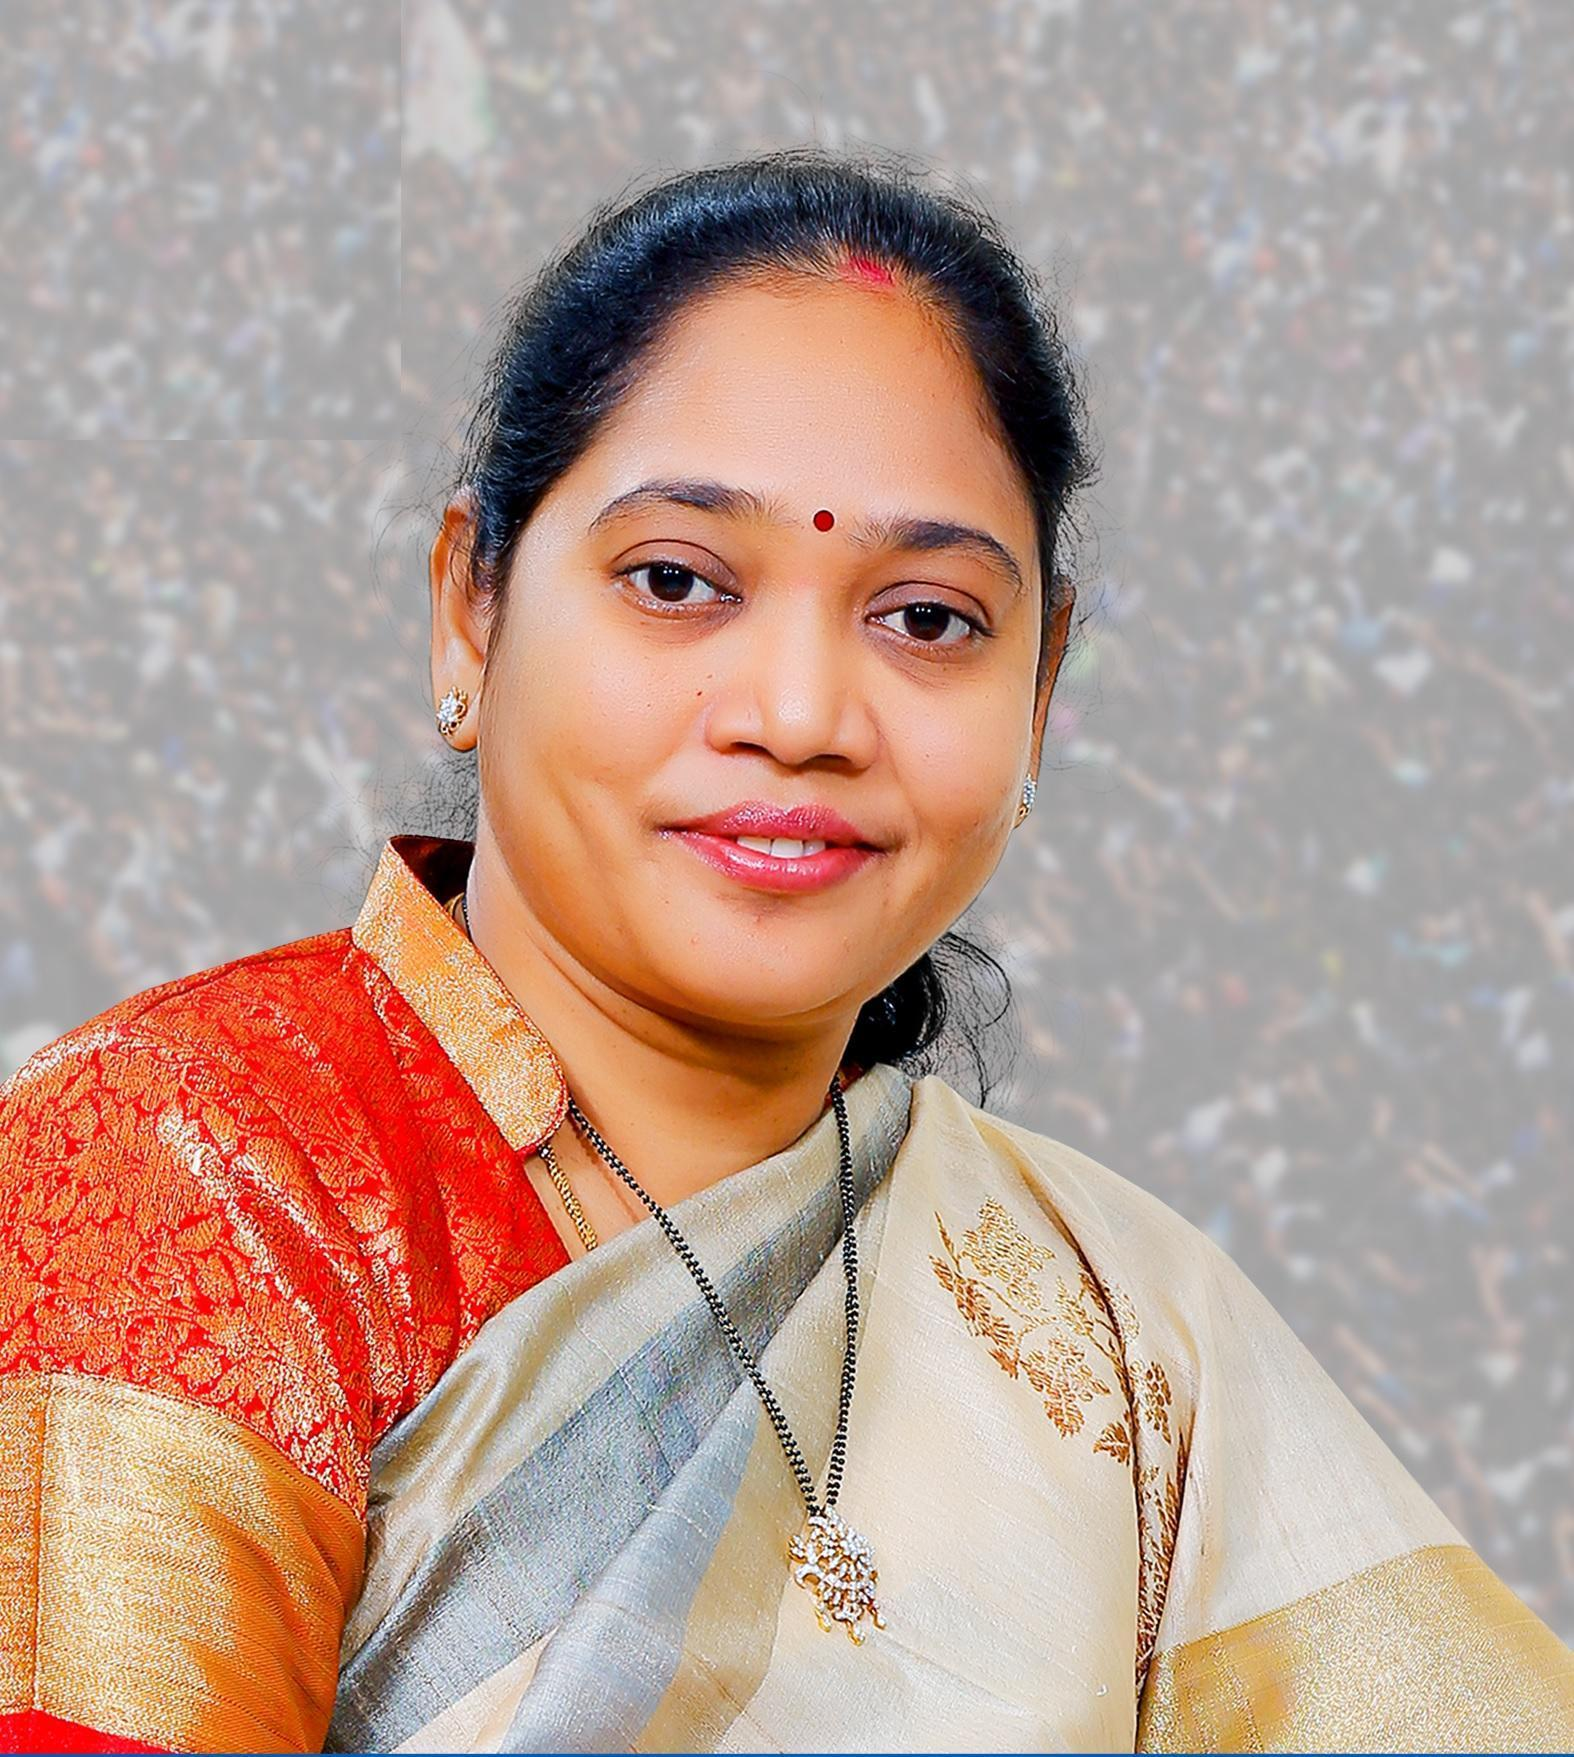 SMT. MEKATHOTI SUCHARITHA